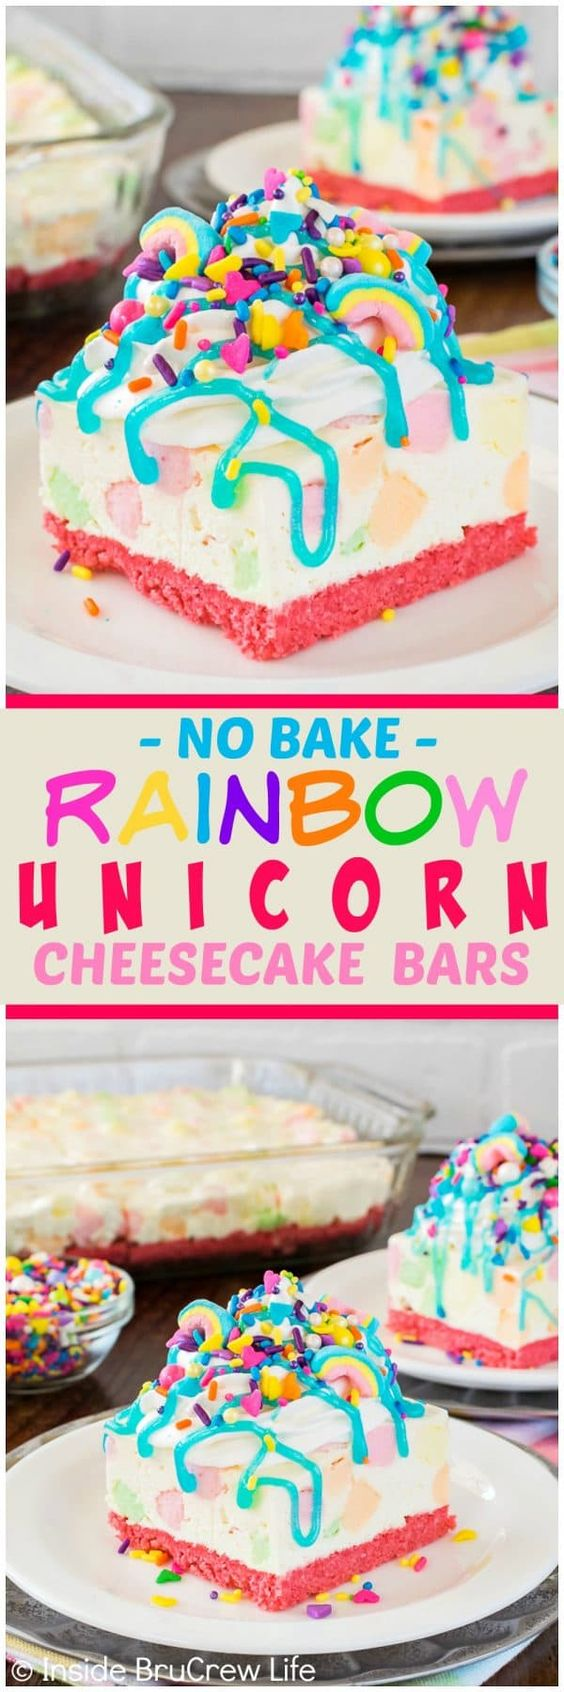 Unicorn desserts for a unicorn party: No Bake Rainbow Unicorn Cheesecake Bars